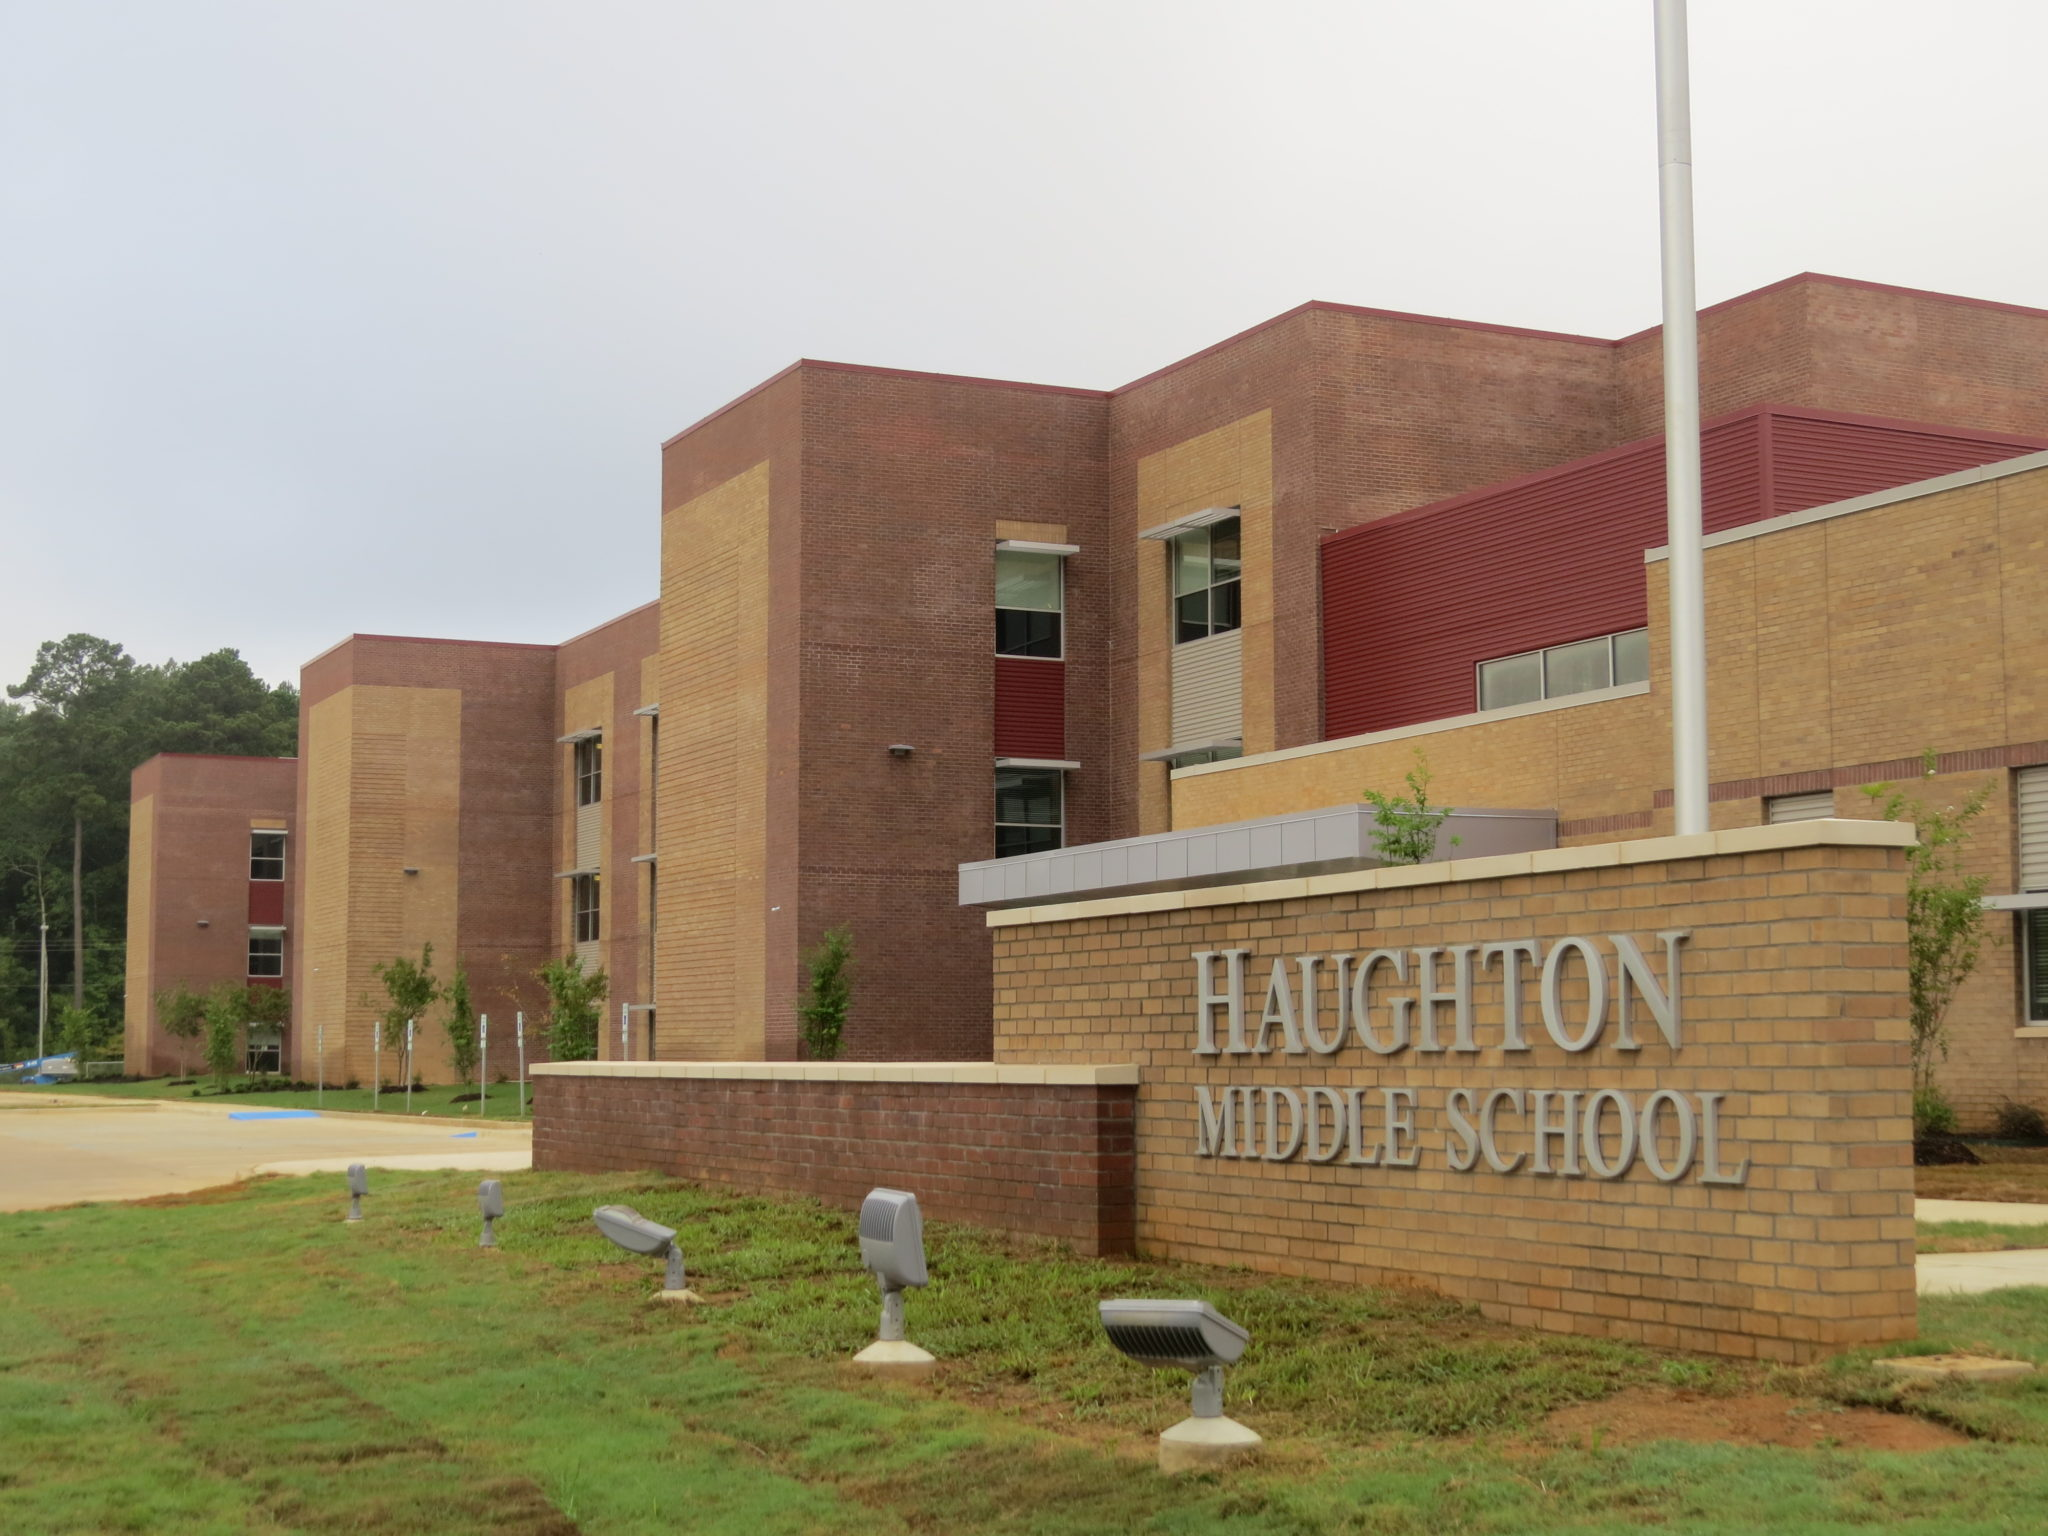 haughton middle school